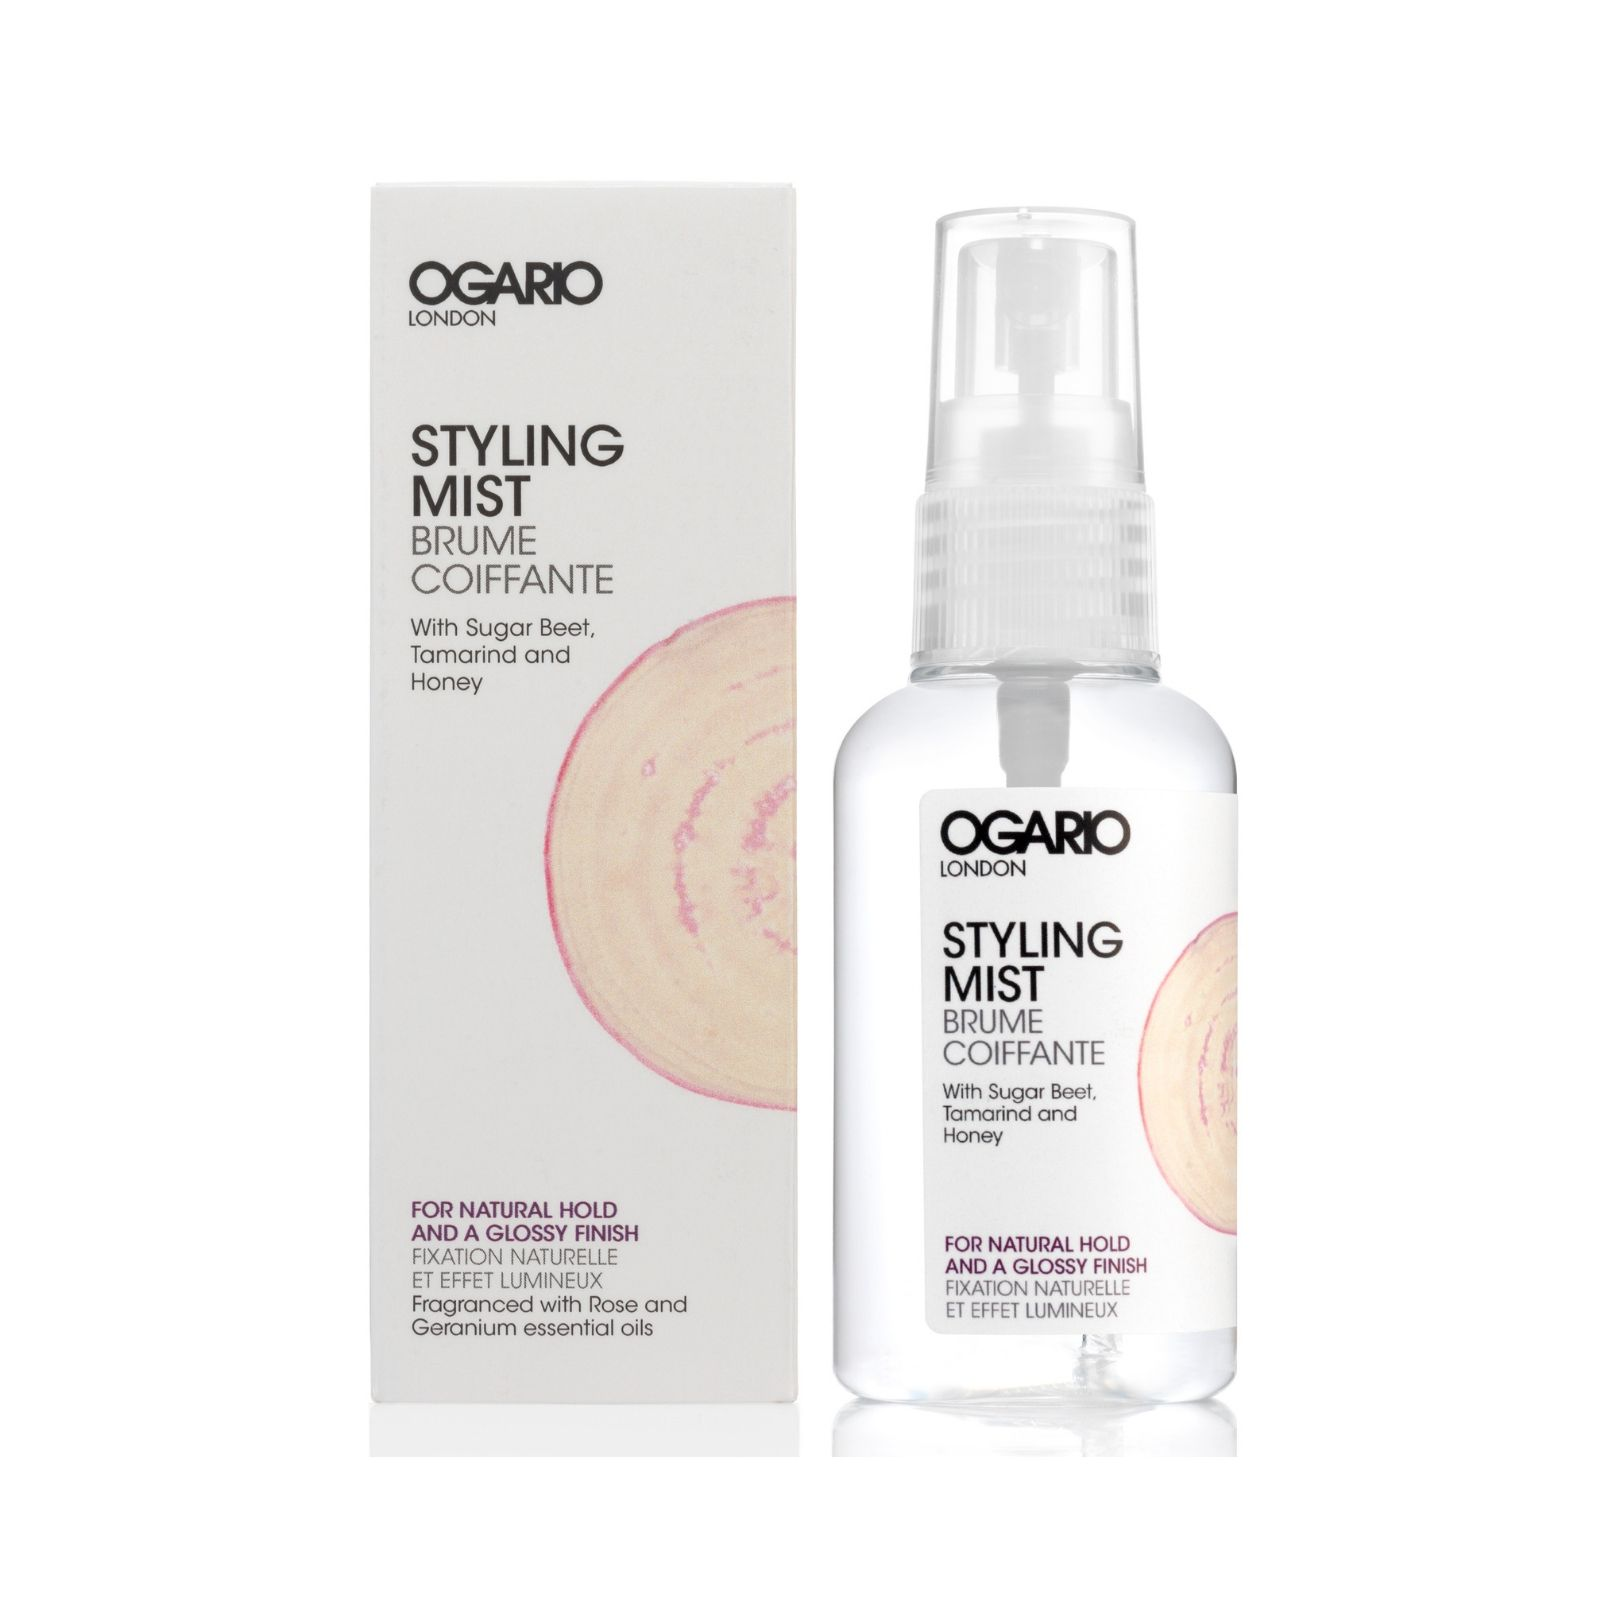 OGARIO Styling Mist for Natural Hold and Glossy Finish; Best for adding moisture and definition to dry curly hair